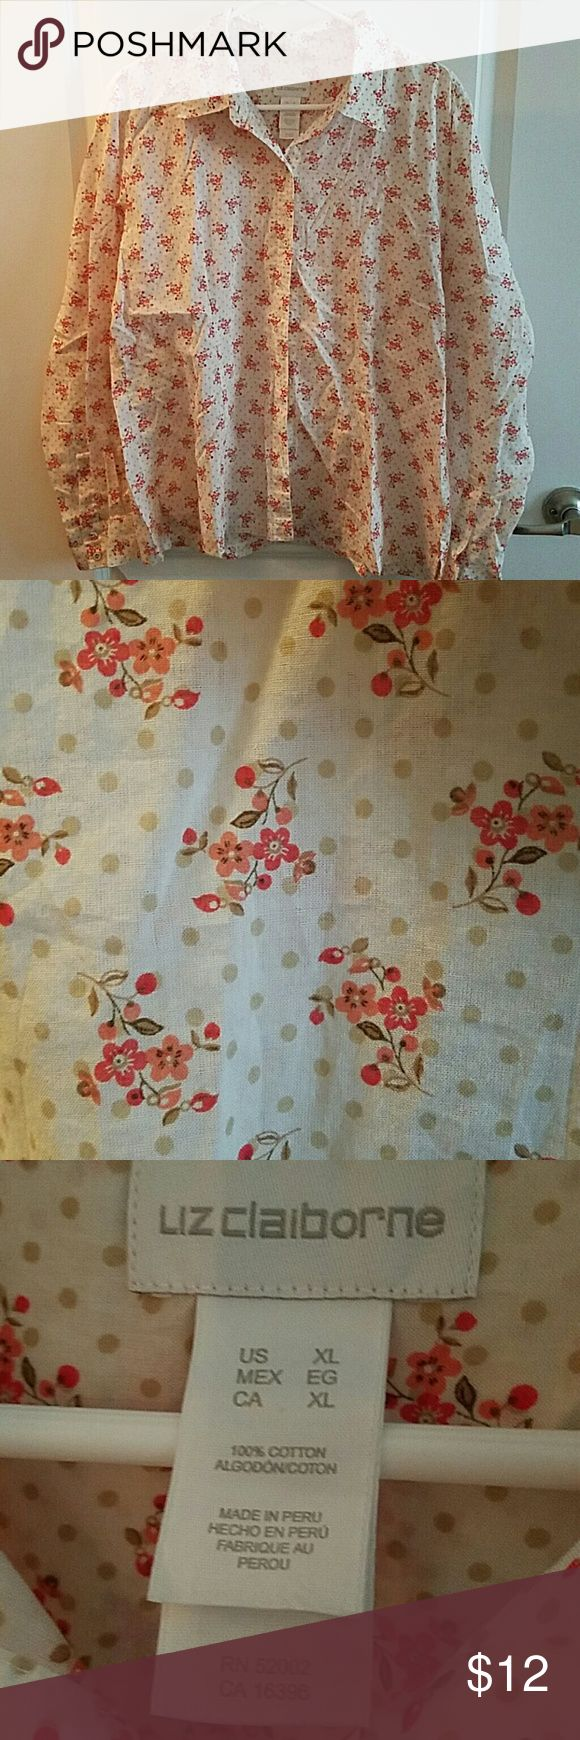 Liz Claiborne Women's Button Down Worn & washed once, in great condition! Liz Claiborne long sleeved button down shirt. Light weight with a beautiful floral design. This is not plus size. Pictured is detail up close with fabric buttons too. 100% cotton. It's overall light cream colored with polka dots and floral design. Comes from a smoke-free pet-free home. Liz Claiborne Tops Button Down Shirts